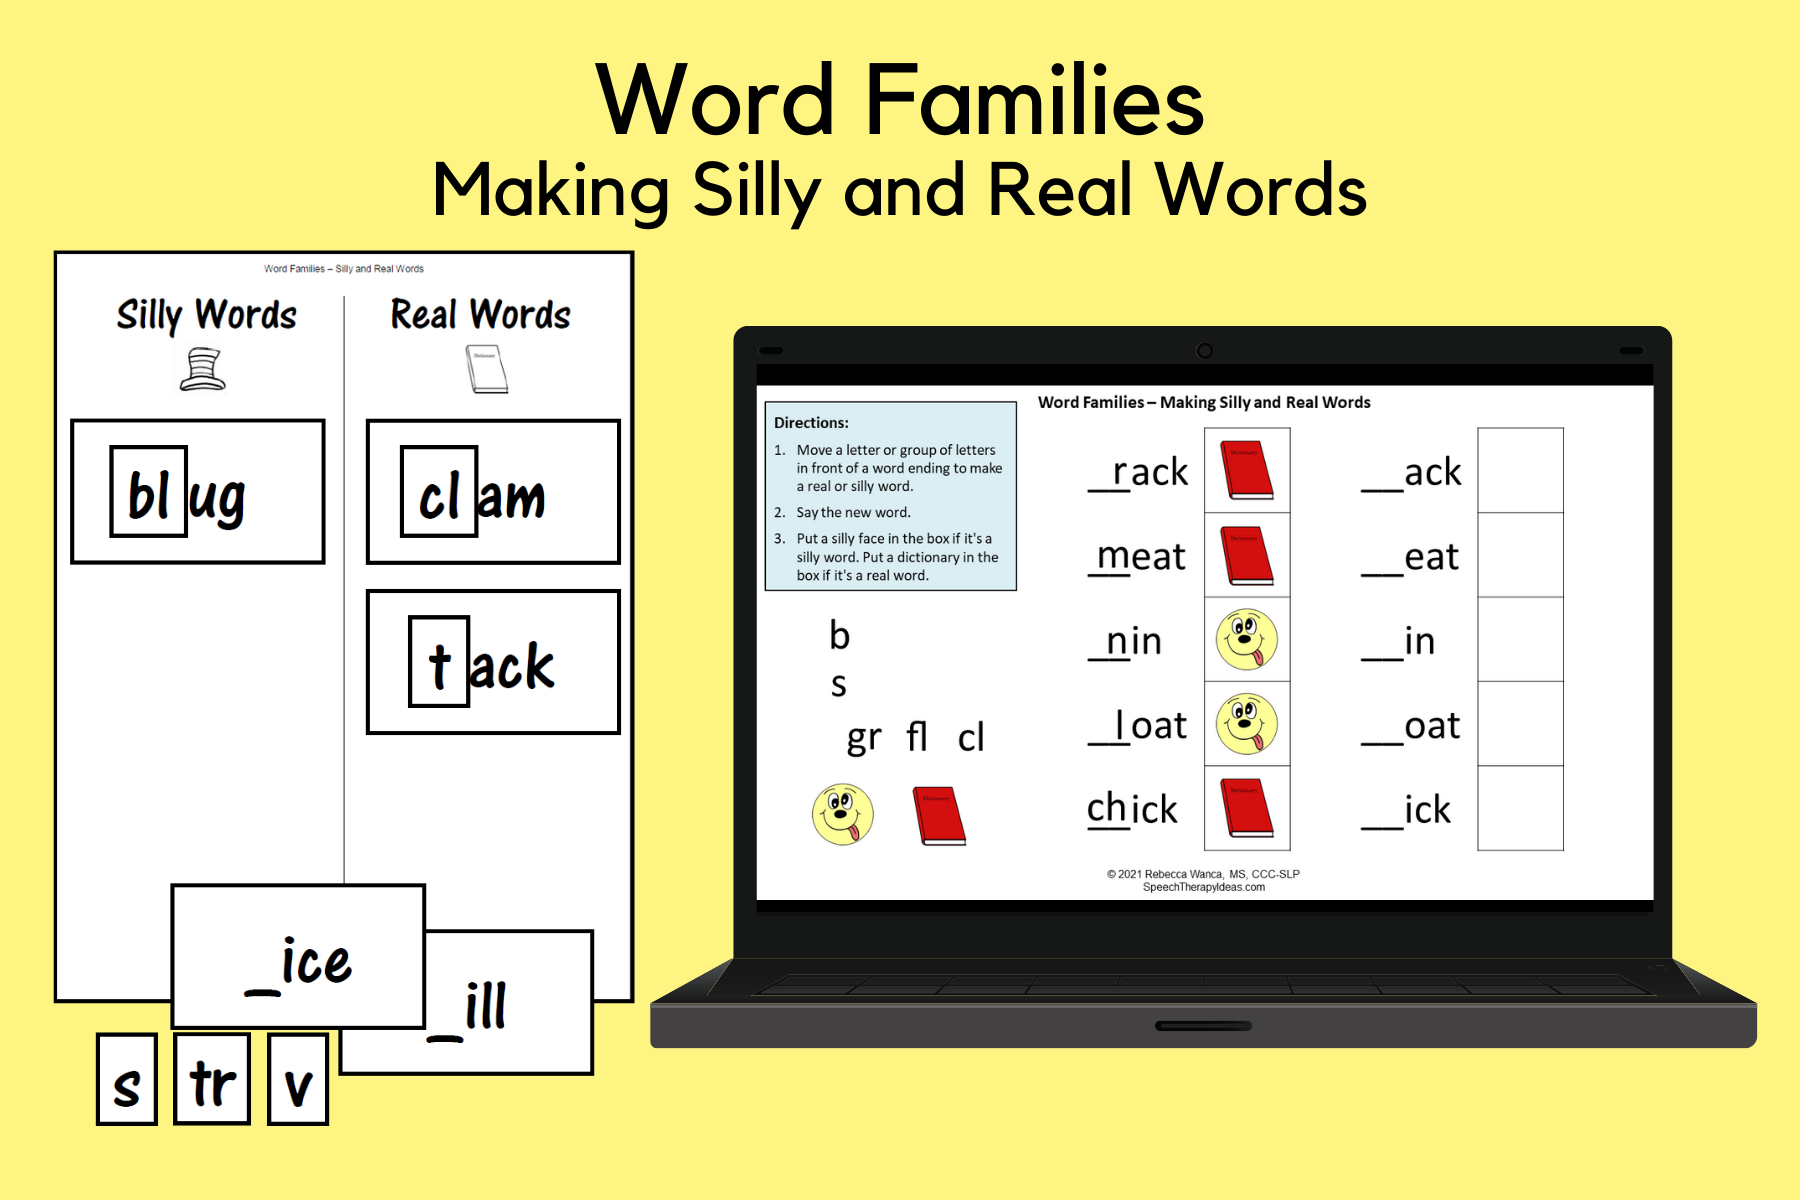 Word Families – Making Silly and Real Words